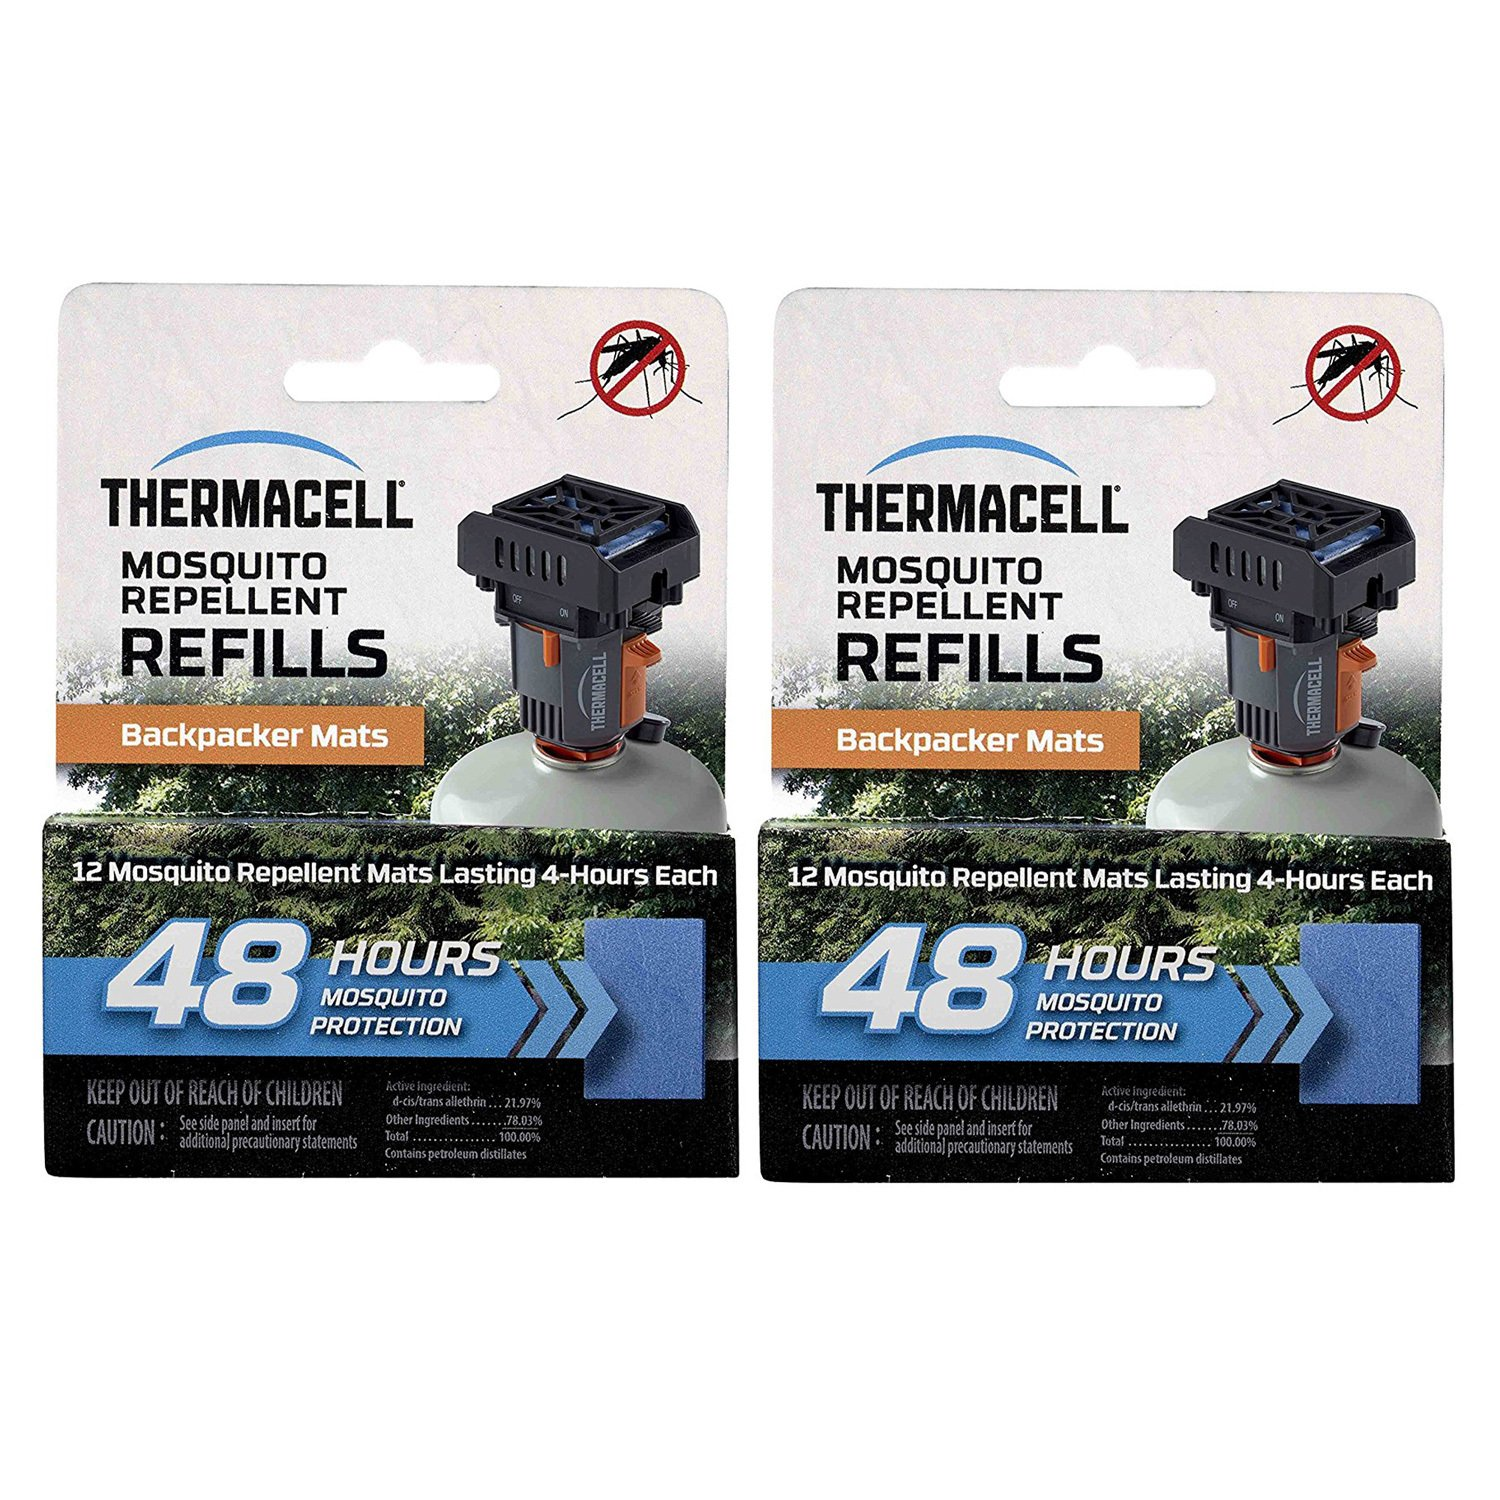 Thermacell M48 48-hrs Backpacker Mosquito Repellent Mats for MR-BP Repeller (24-Pack) by Thermacell